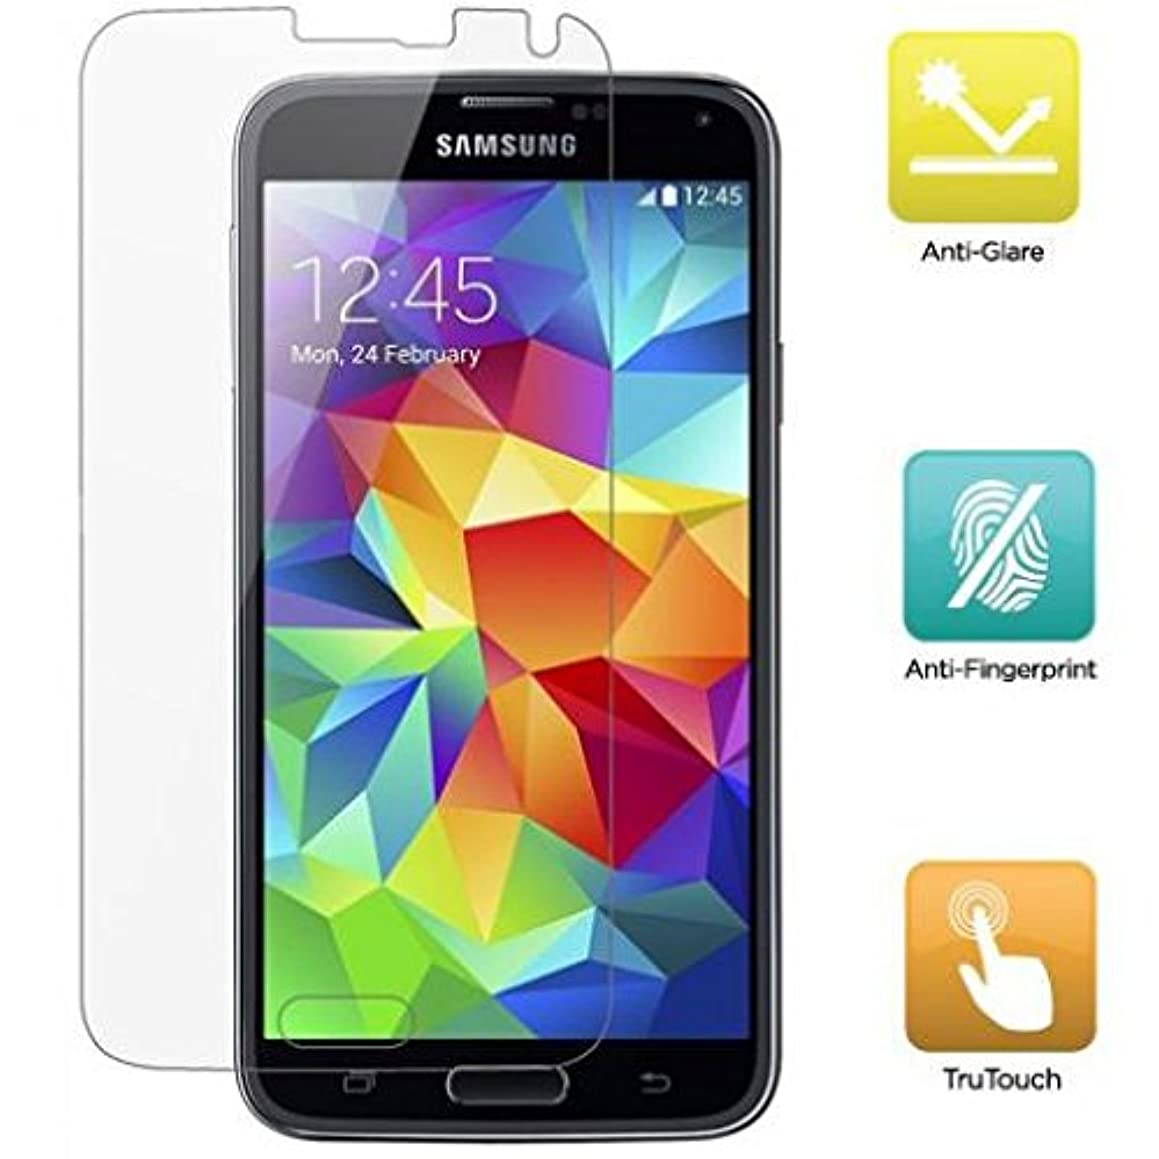 Verizon Samsung Galaxy S5 (SM-G900V) Screen Protector, Screen Protector Matte Anti-Glare Anti-Fingerprint LCD Cover Display Film [Fingerprint Resistant] for Samsung Galaxy S5 (SM-G900V)